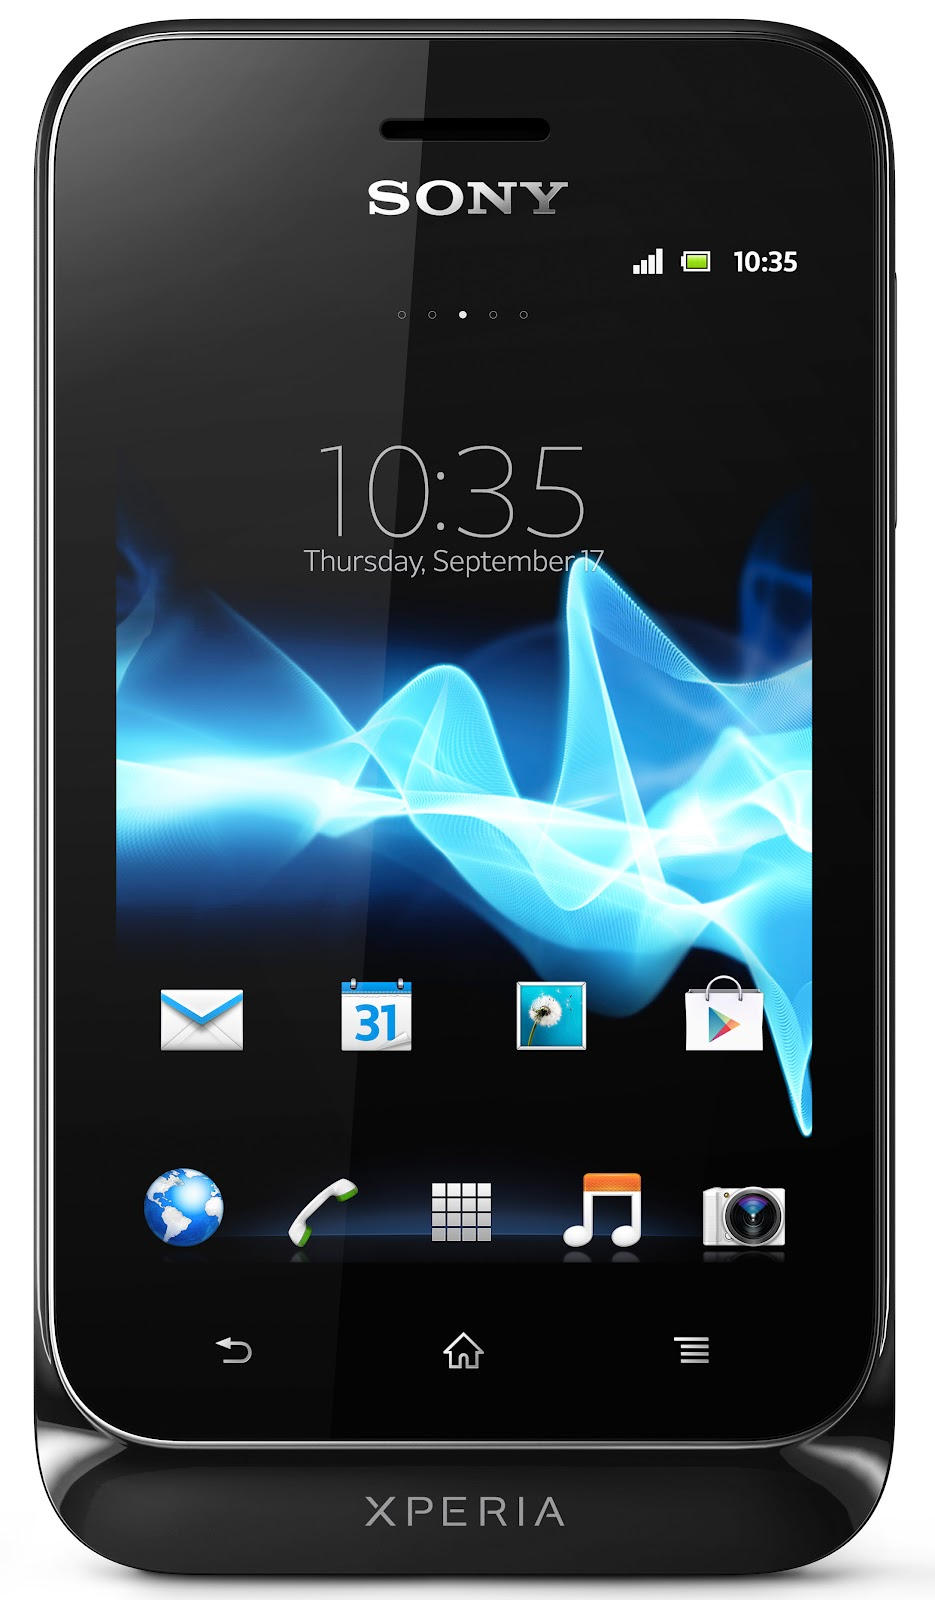 Sony Xperia tipo st21x - 04